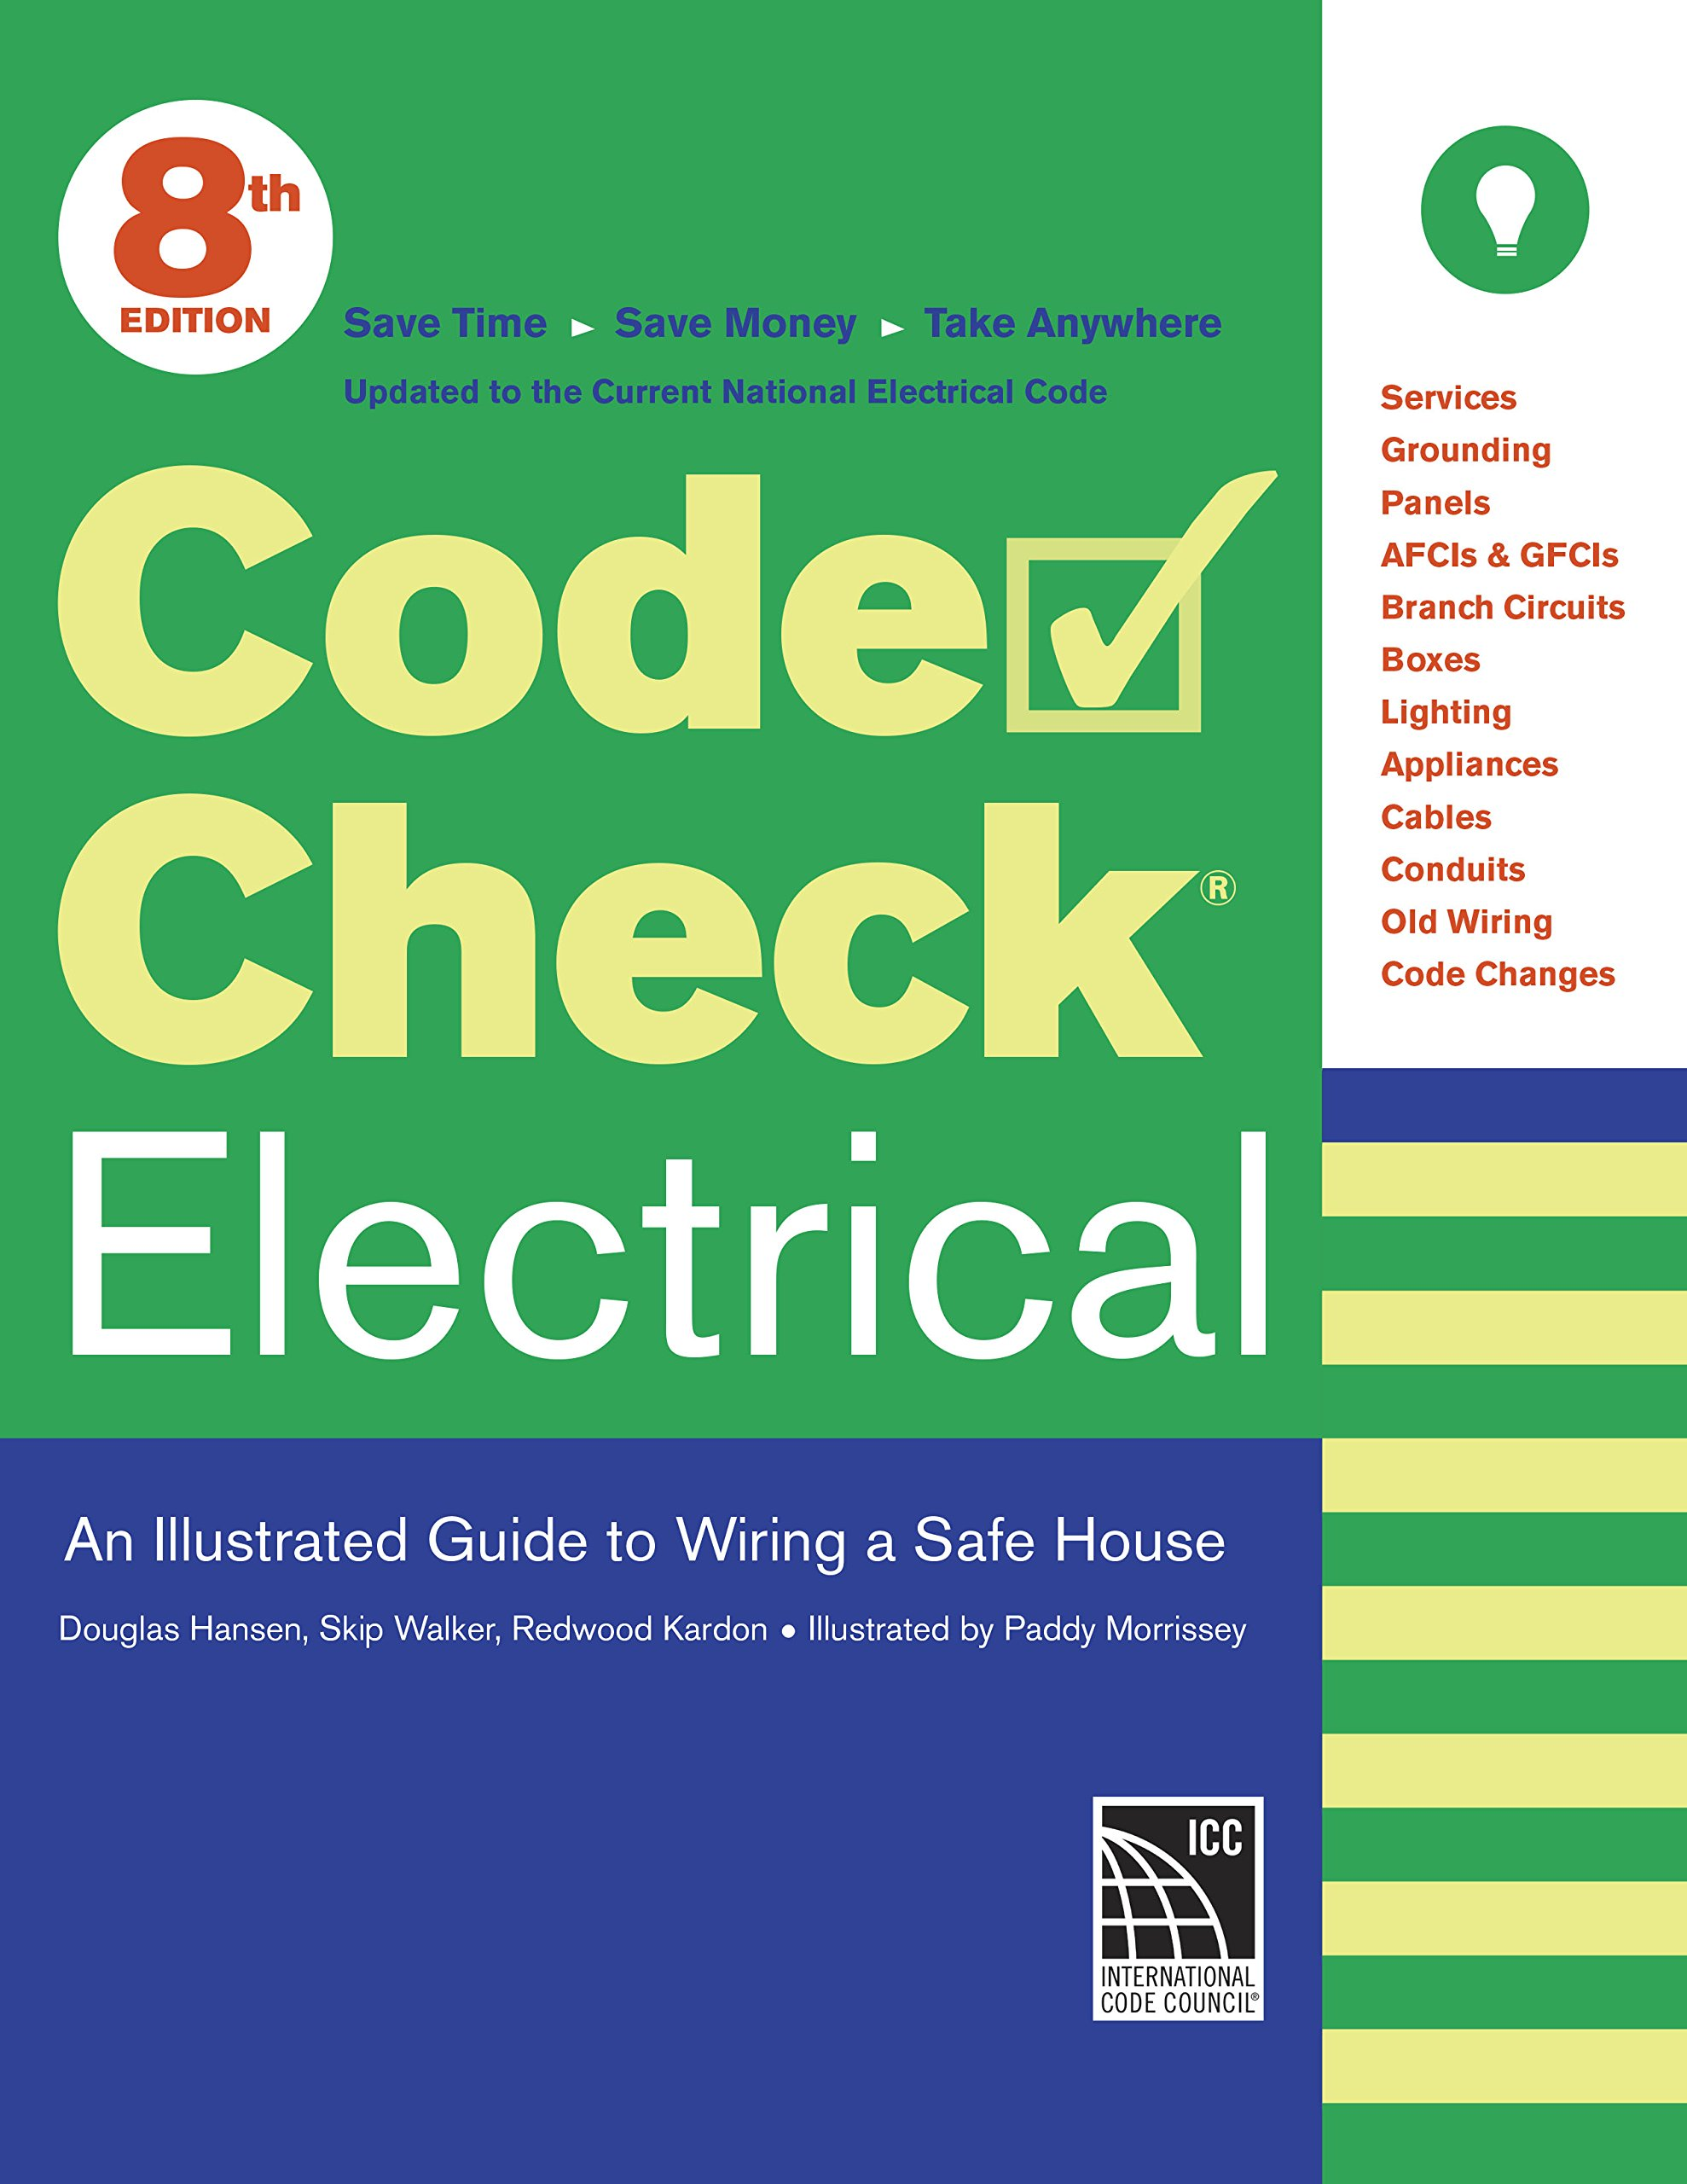 Code Check Electrical: An Illustrated Guide to Wiring a Safe House: Redwood  Kardon, Douglas Hansen, Skip Walker, Paddy Morrissey: 9781631869167:  Amazon.com: ...